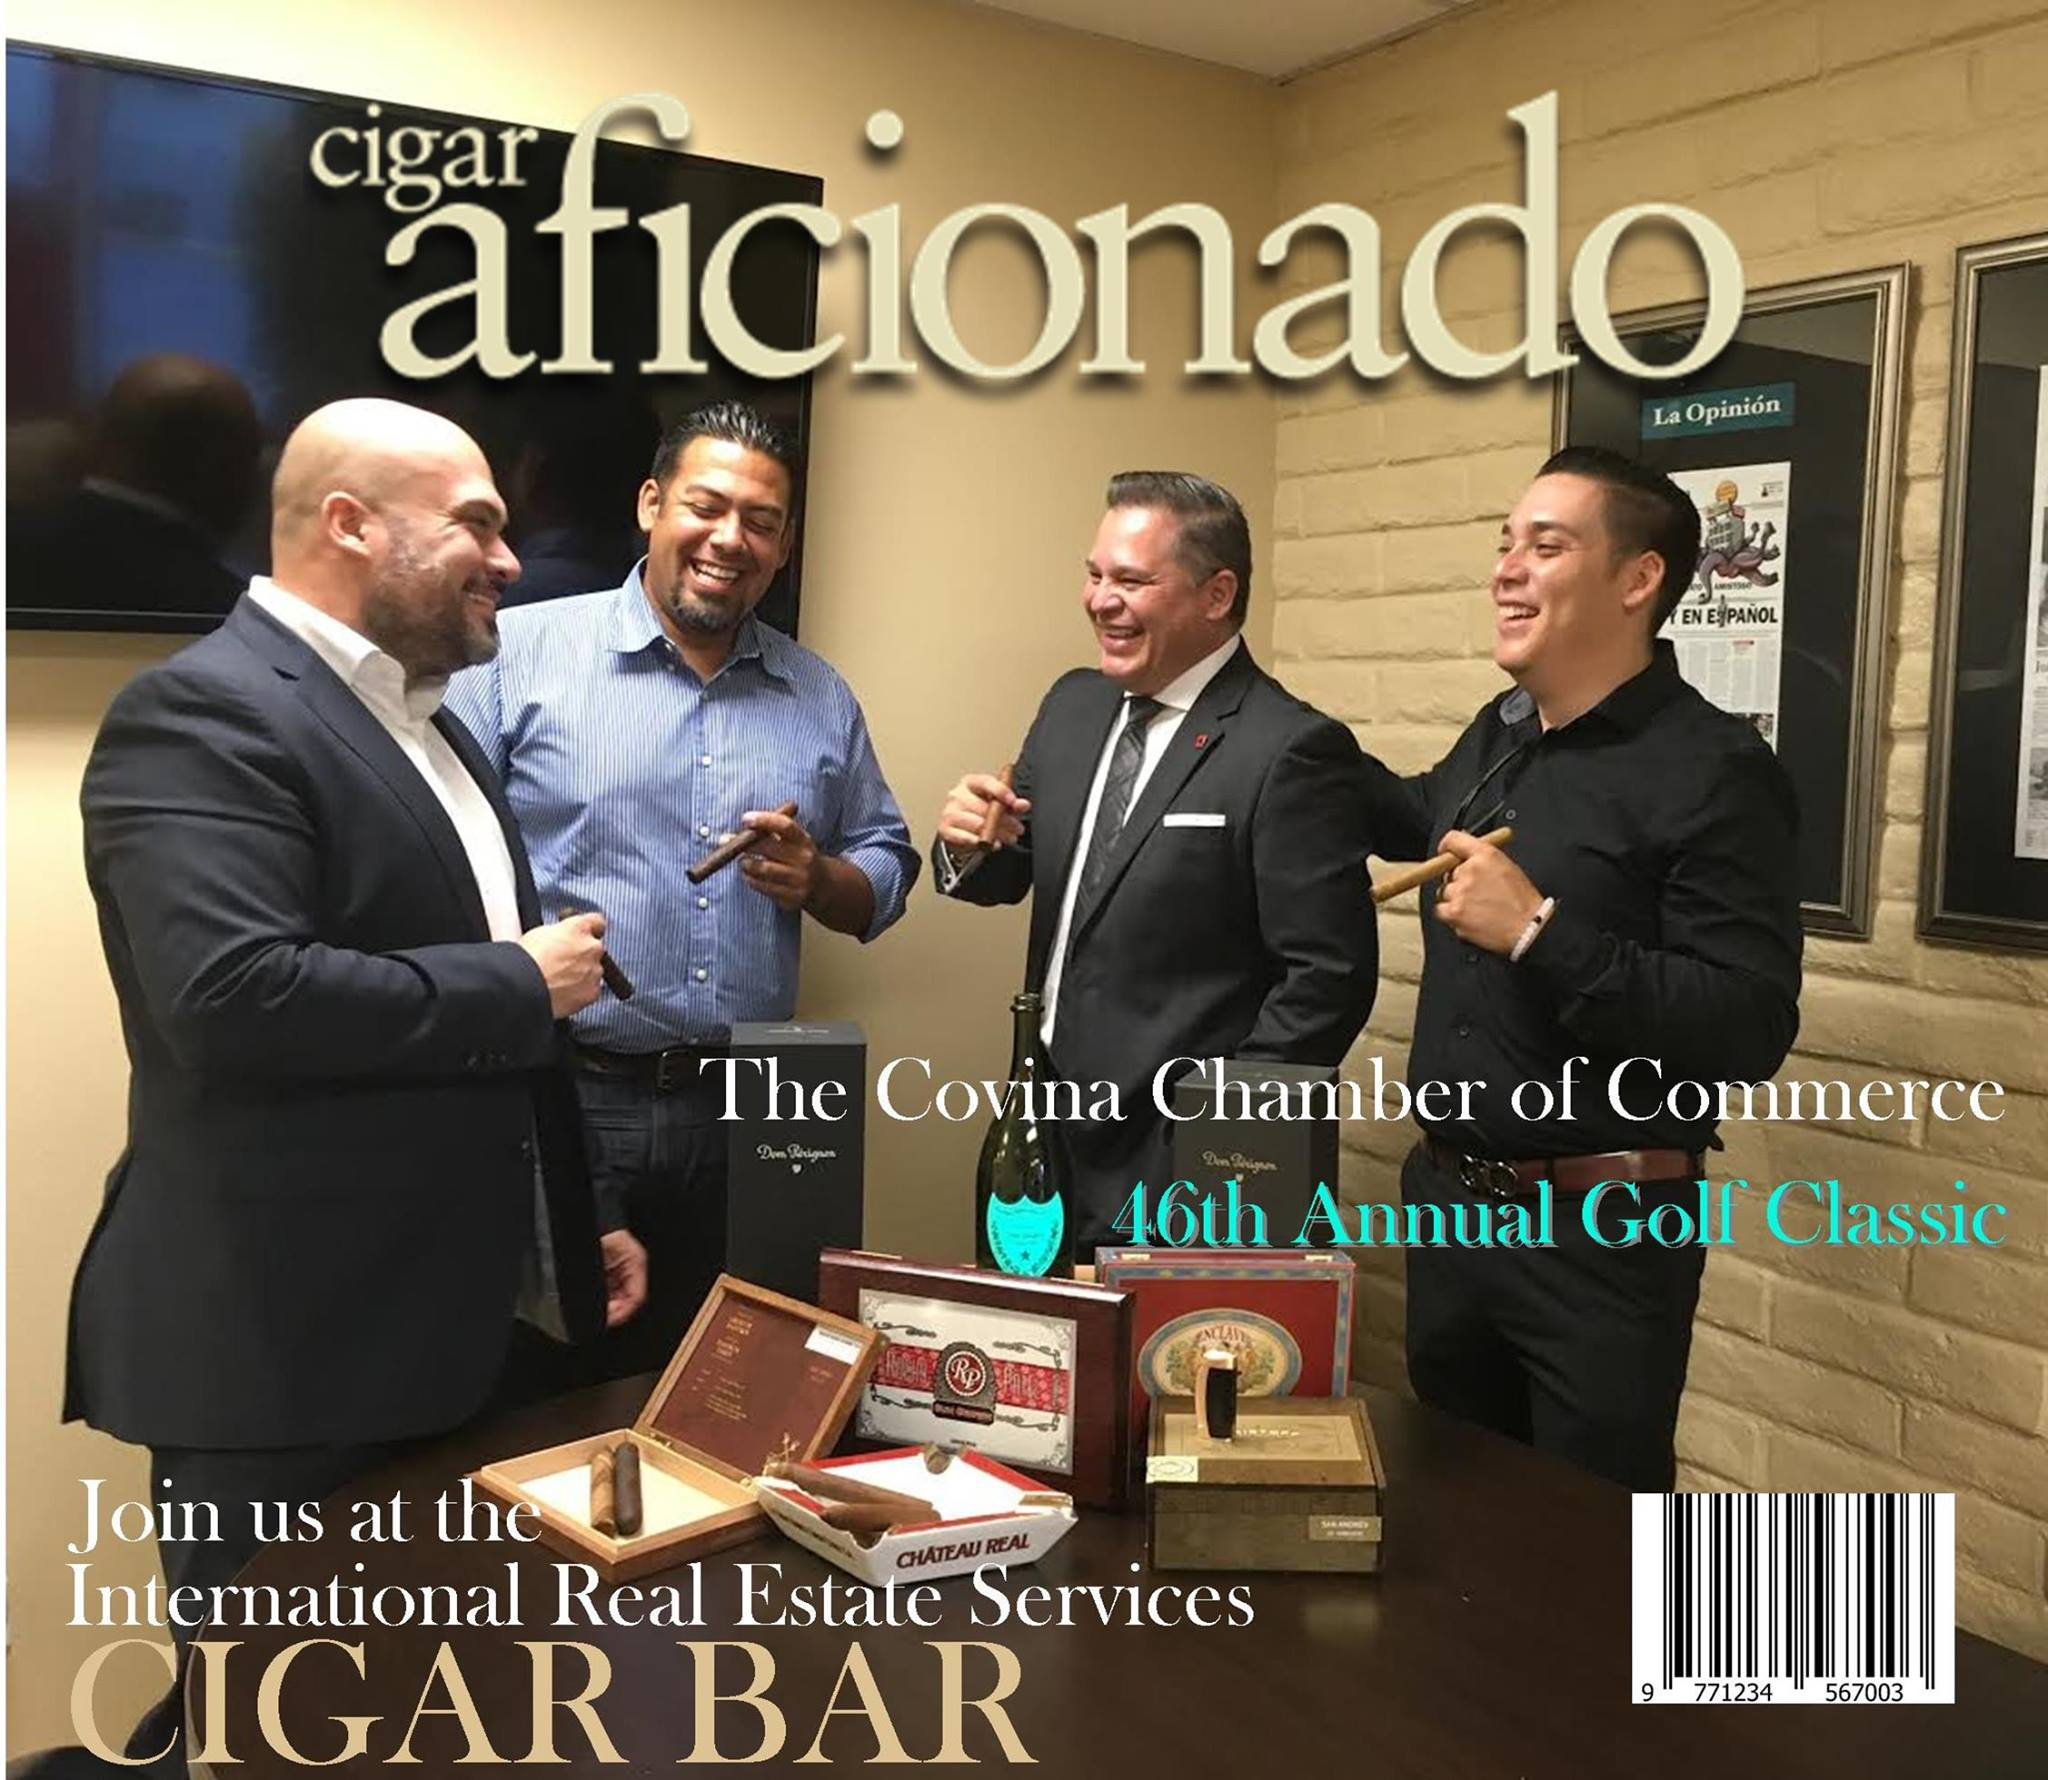 Join International Real Estate Services at our VIP Cigar Bar!  The Covina Chamber of commerce Proudly Presents the 46th Annual Golf classic Monday, October 24, 2016  A Portion of the Proceeds Benefiting  The Covina Police Dept. K-9 Program  at South Hills Country Club  2655 South Citrus Street, West Covina CA 91791  FOR MORE INFORMATION: VISIT: www.covina.org  CALL: (626)967-4191 - Covina Chamber of Commerce EMAIL: Chamber@Covina.org